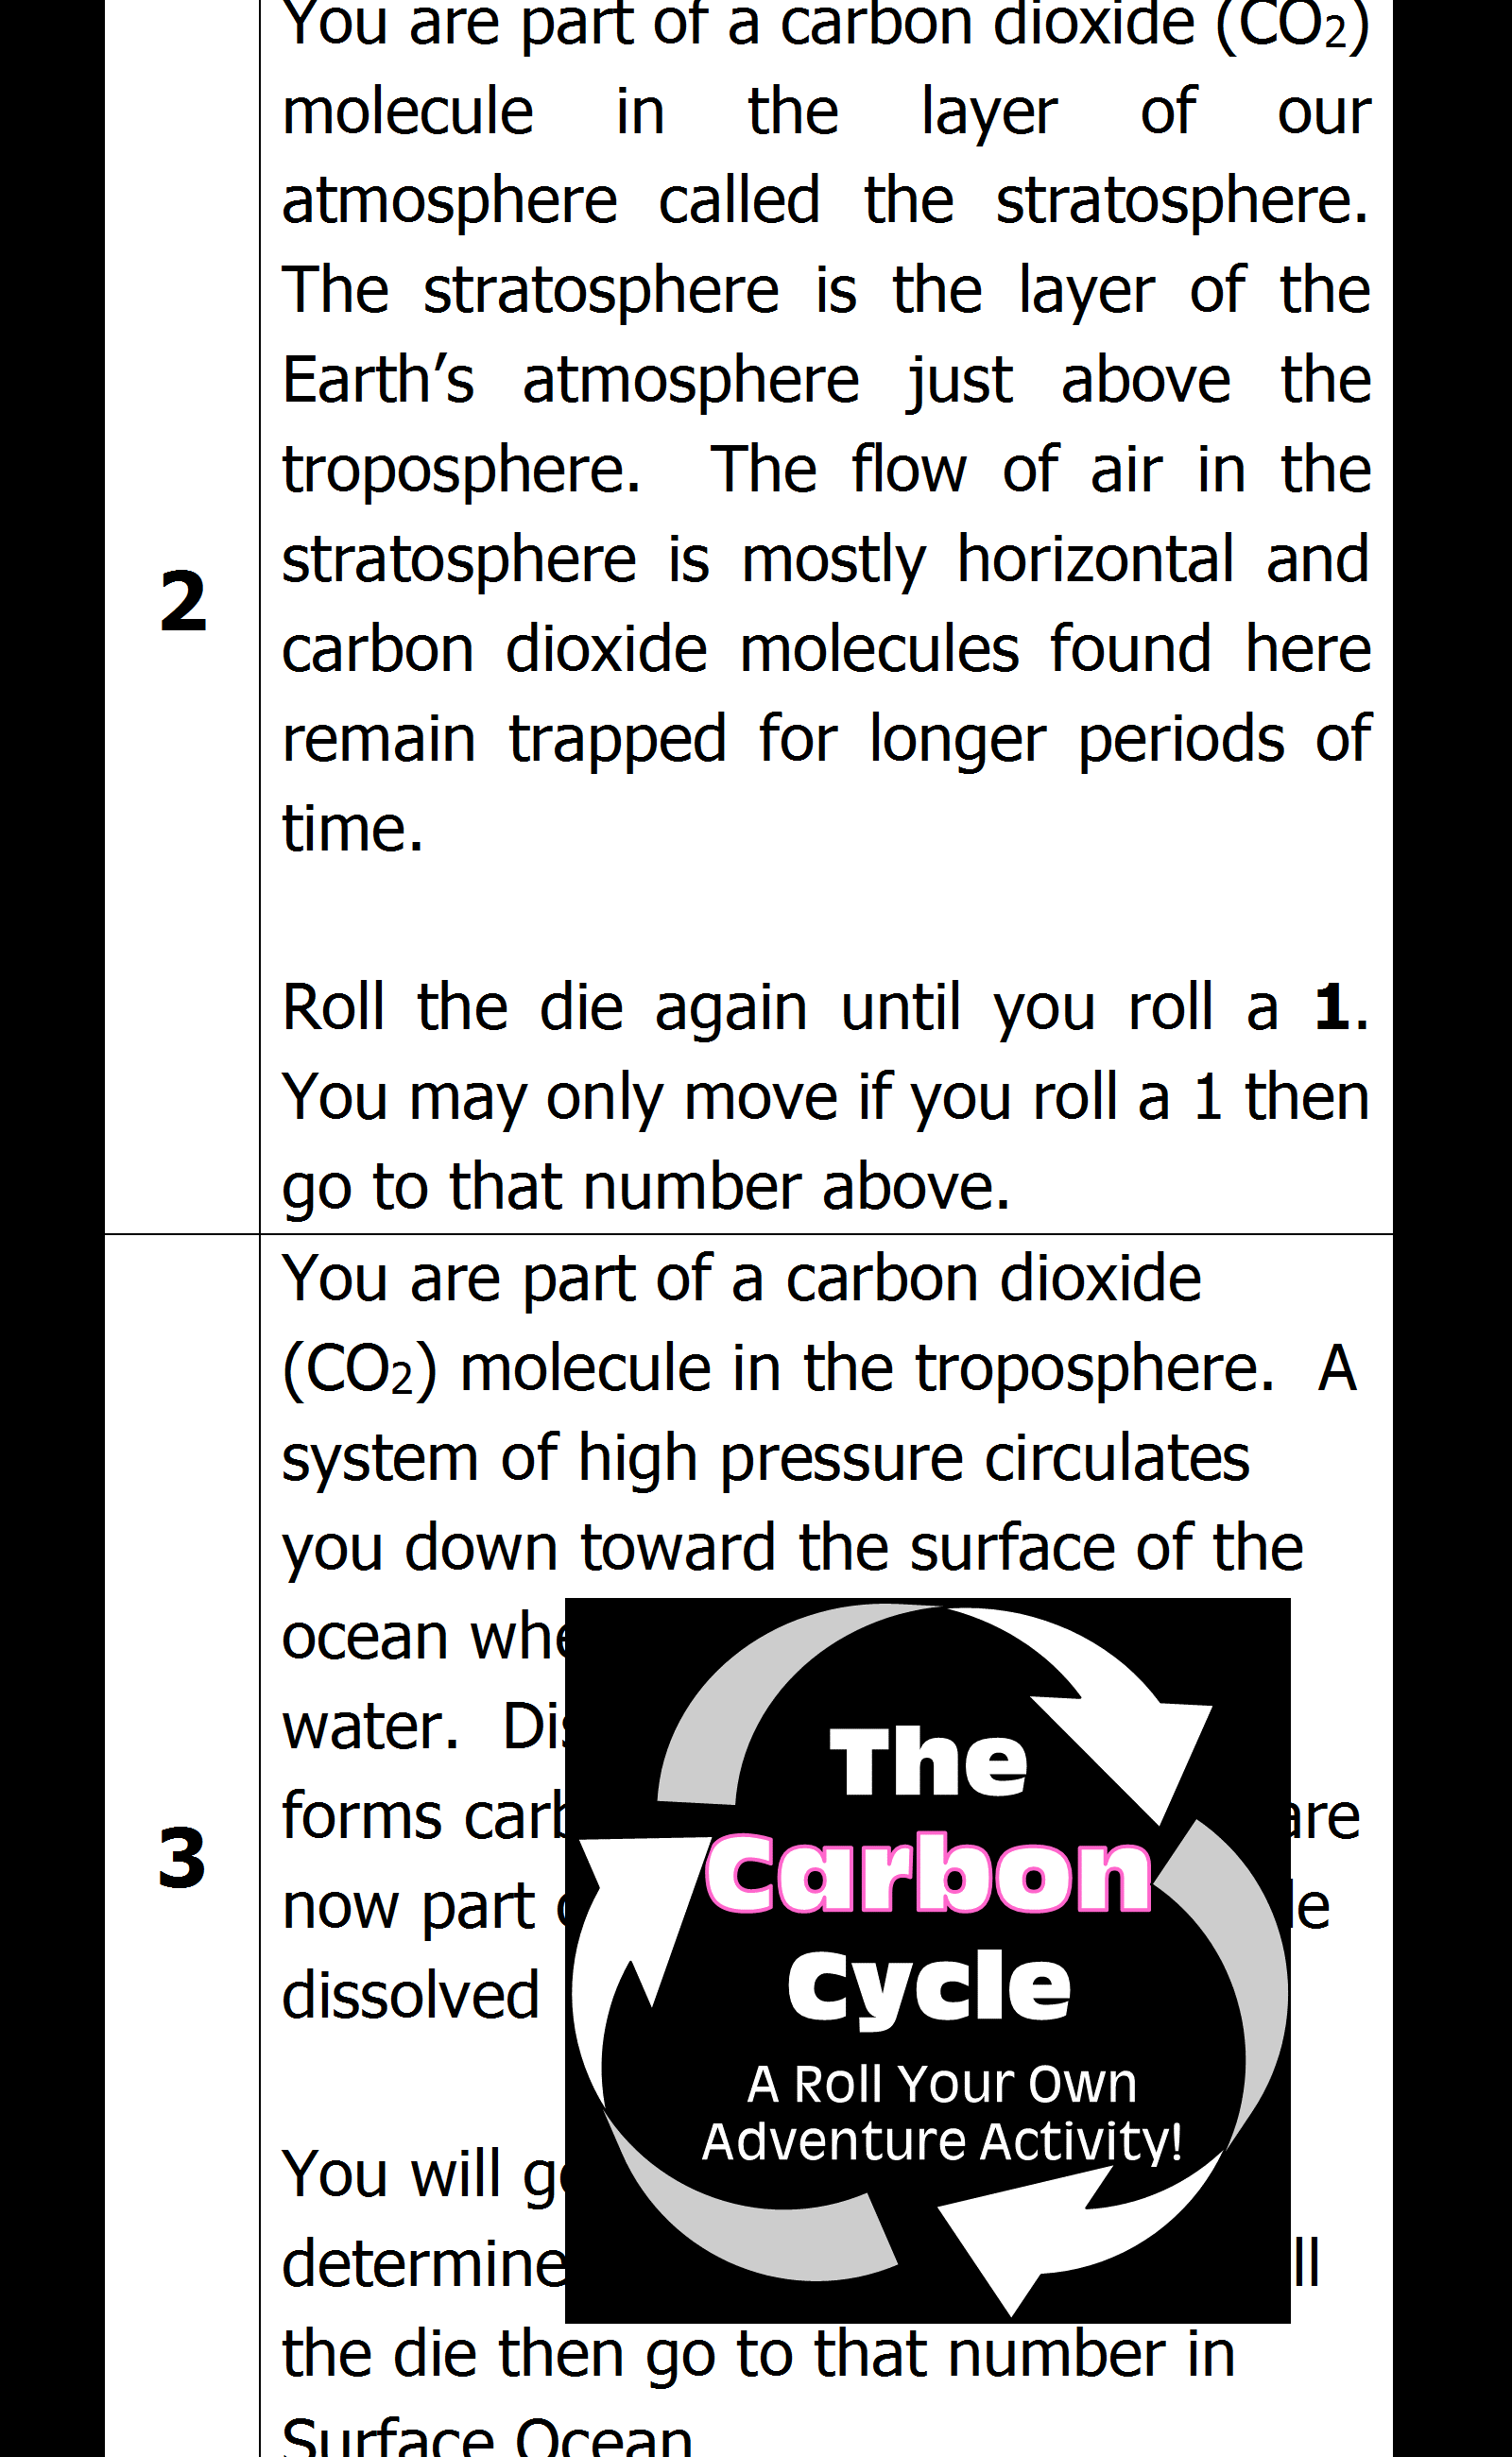 Journey Through The Carbon Cycle A Roll Your Own Adventure Activity